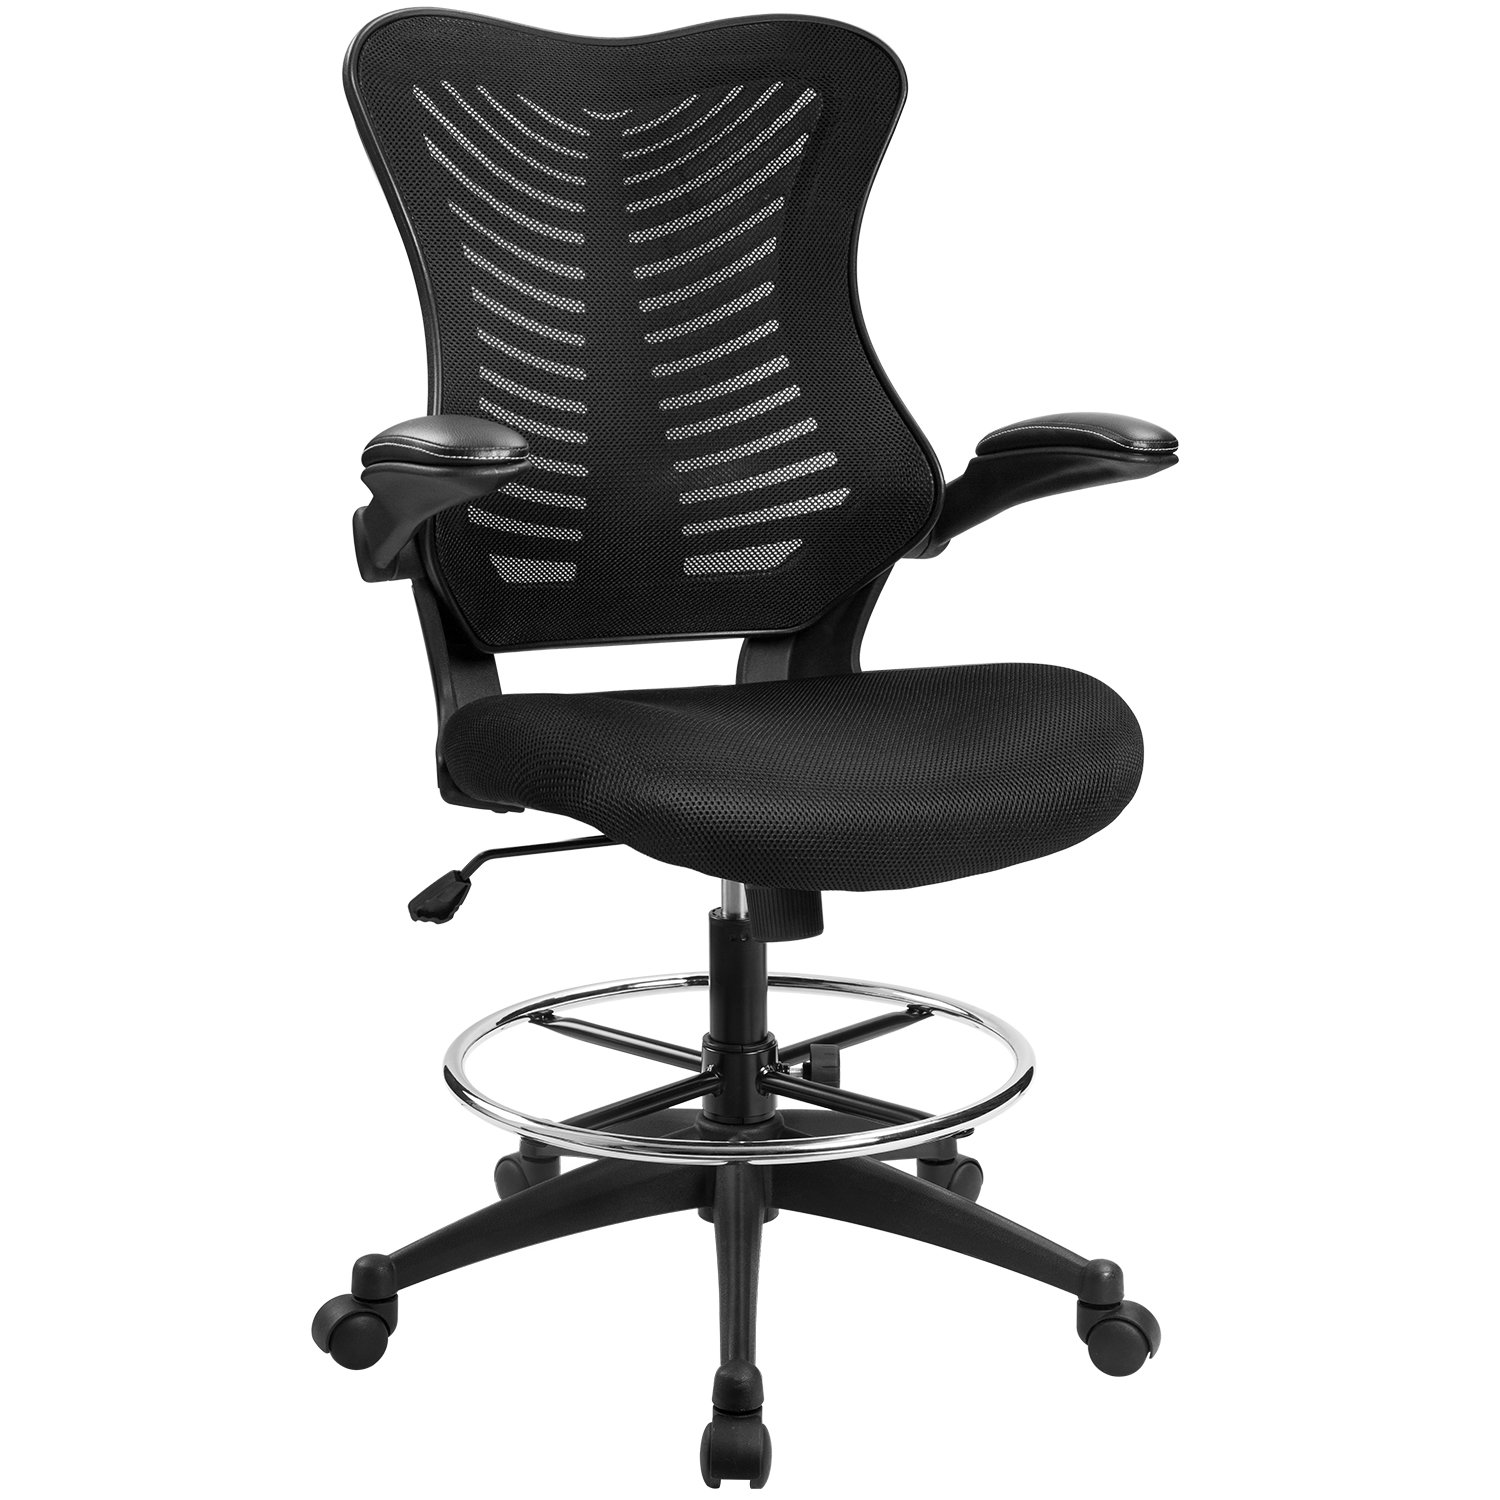 Furmax Drafting Office Chair Height Adjustable Swivel Mesh Reception Chair With Flip-Up Arms,Tall Chair For Standing Desks (Black)